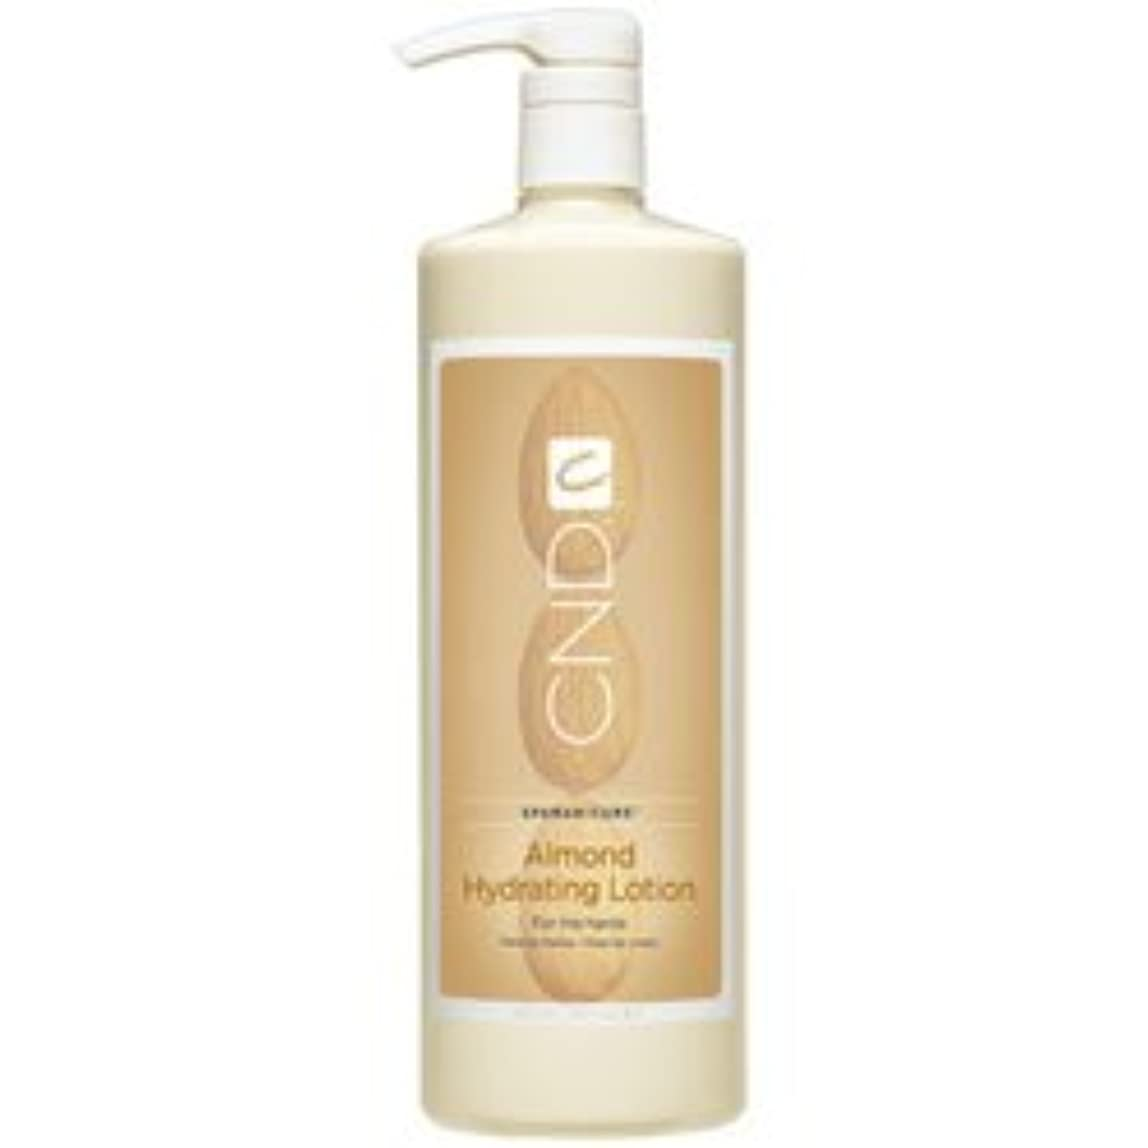 のスコア百科事典外側CND SpaManicure - Almond Hydrating Lotion - 33oz